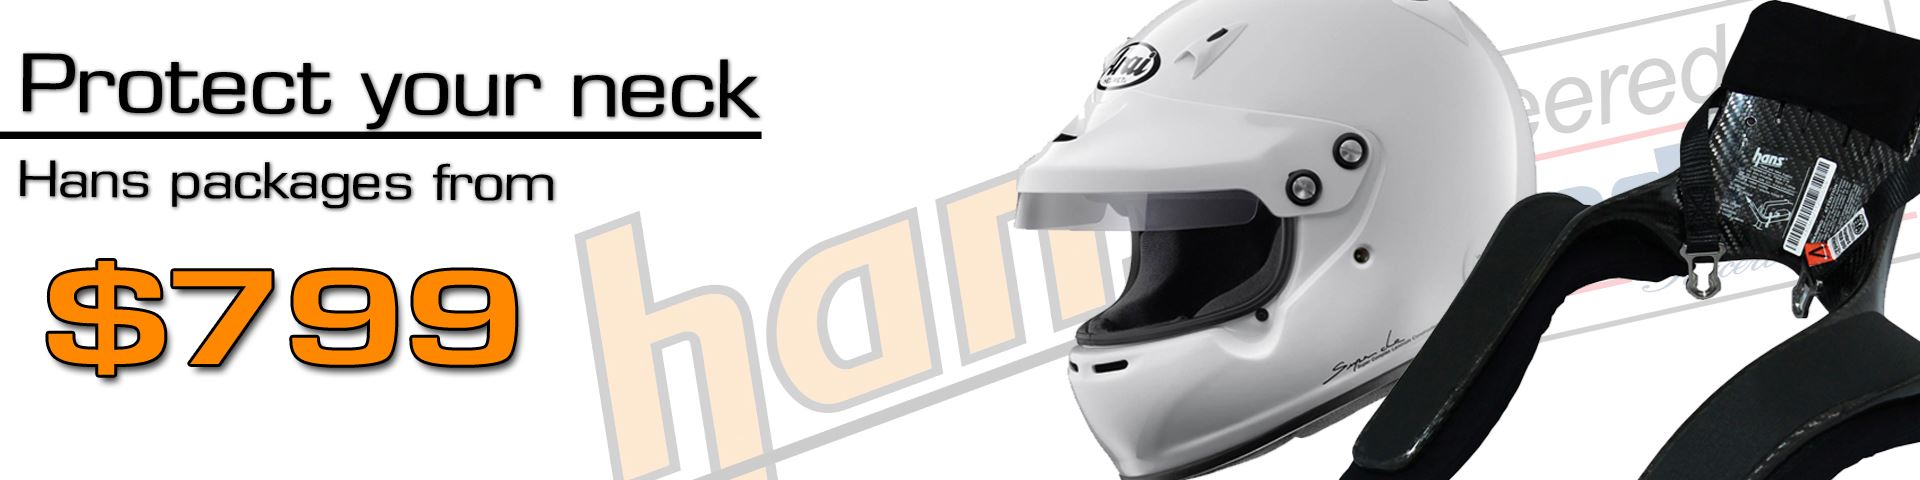 Helmet HANS Packages from $799